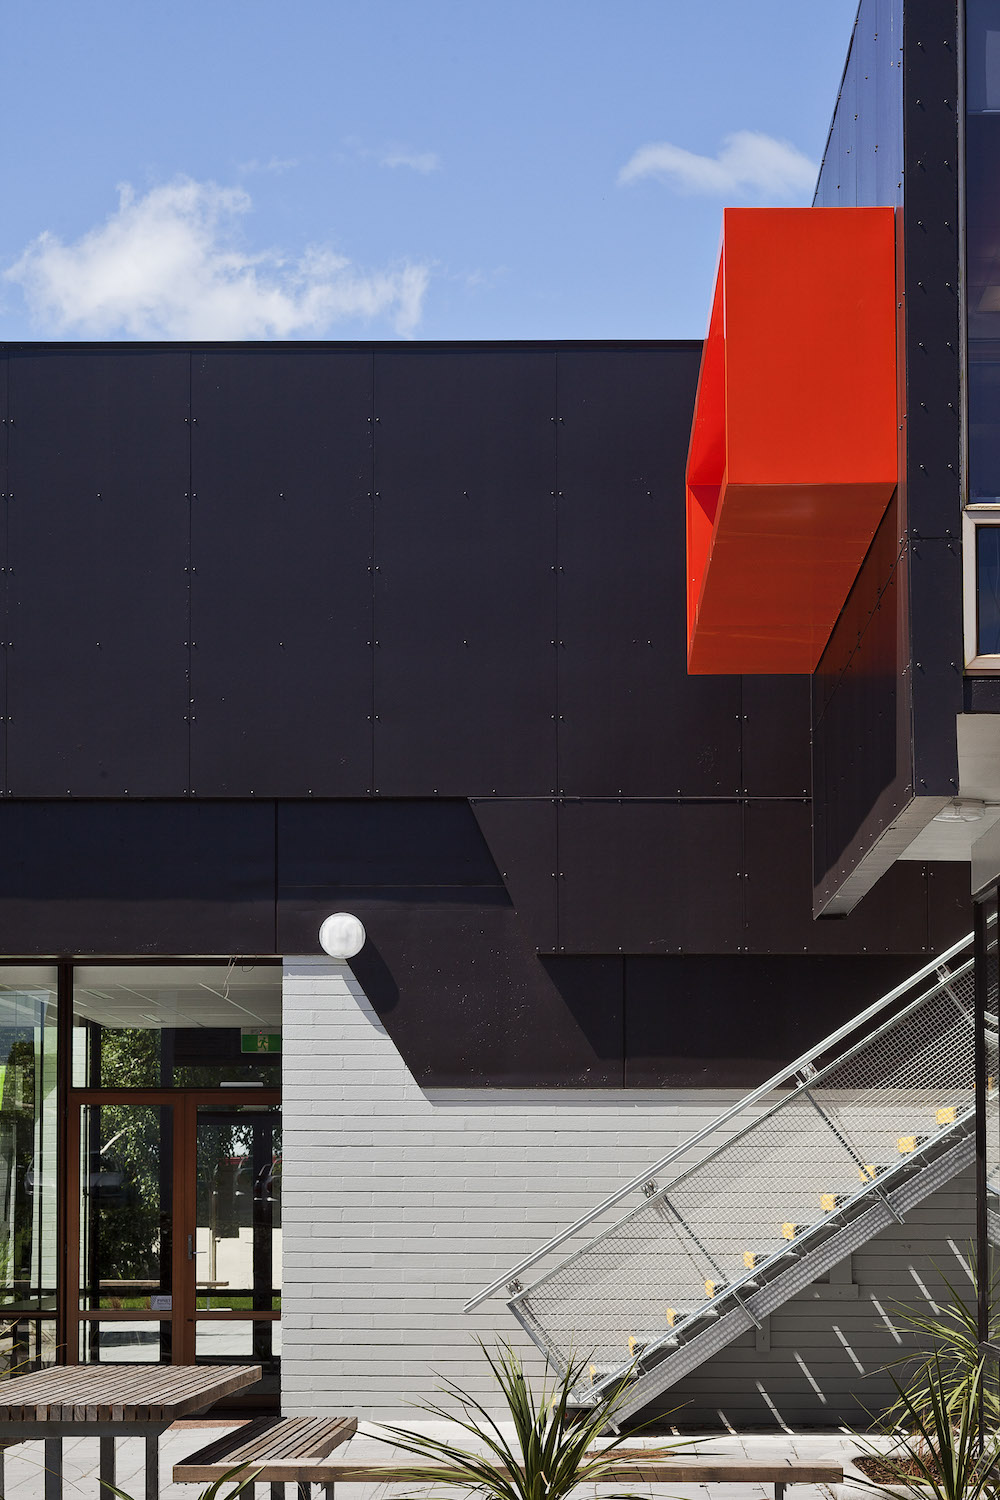 MT. ROSKILL LIBRARY & FICKLING CONVENTION CENTRE